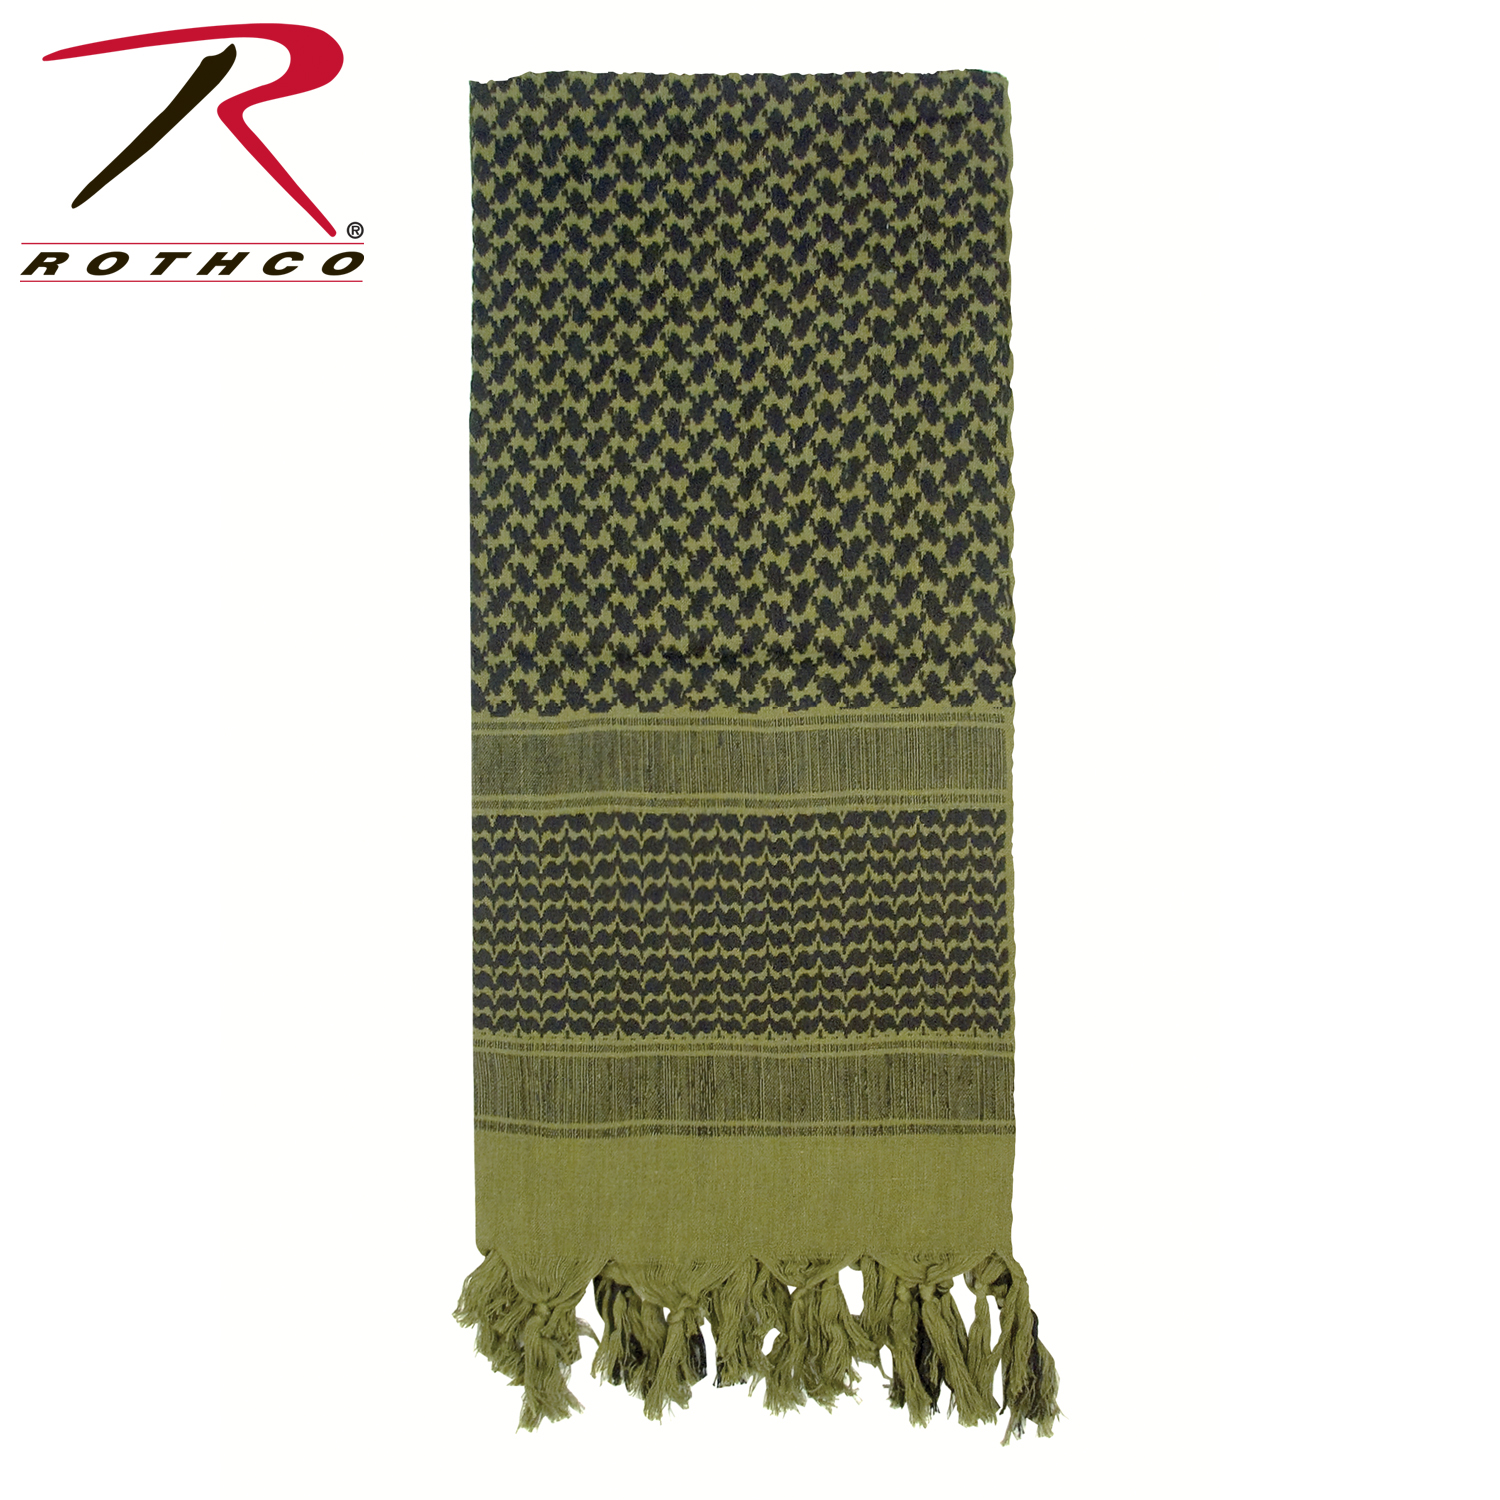 109e1a2040 Rothco tactical shemagh, tactical shemagh, shemagh, desert scarf, tactical  desert scarf,